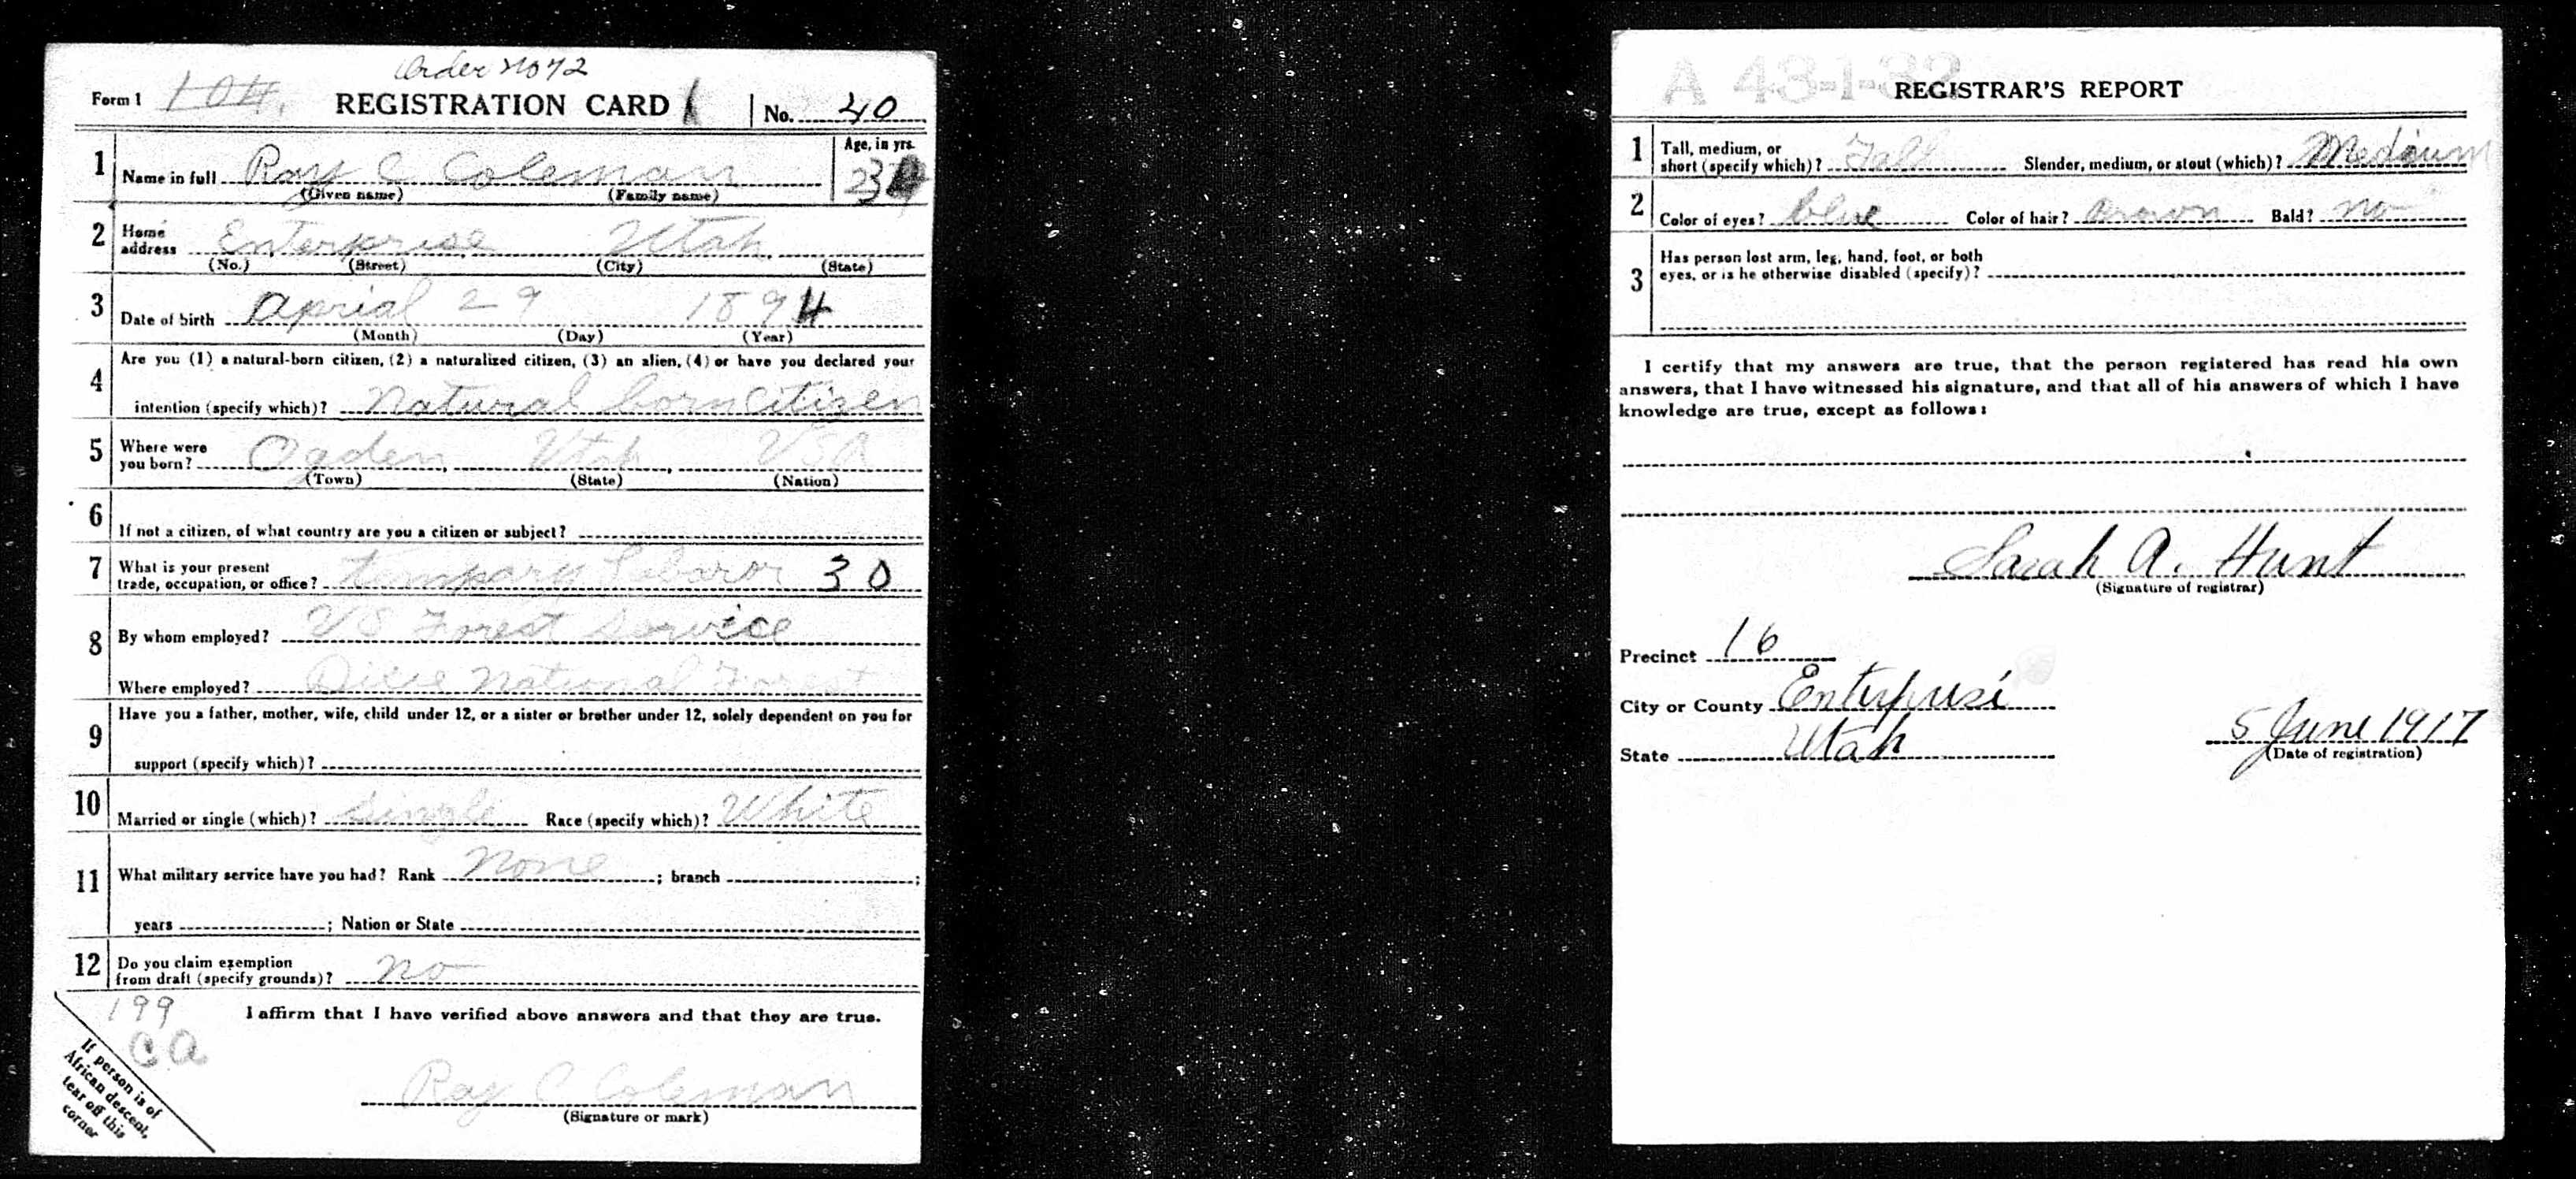 Ray Coleman's draft card. Photo credit: Ancestry.com